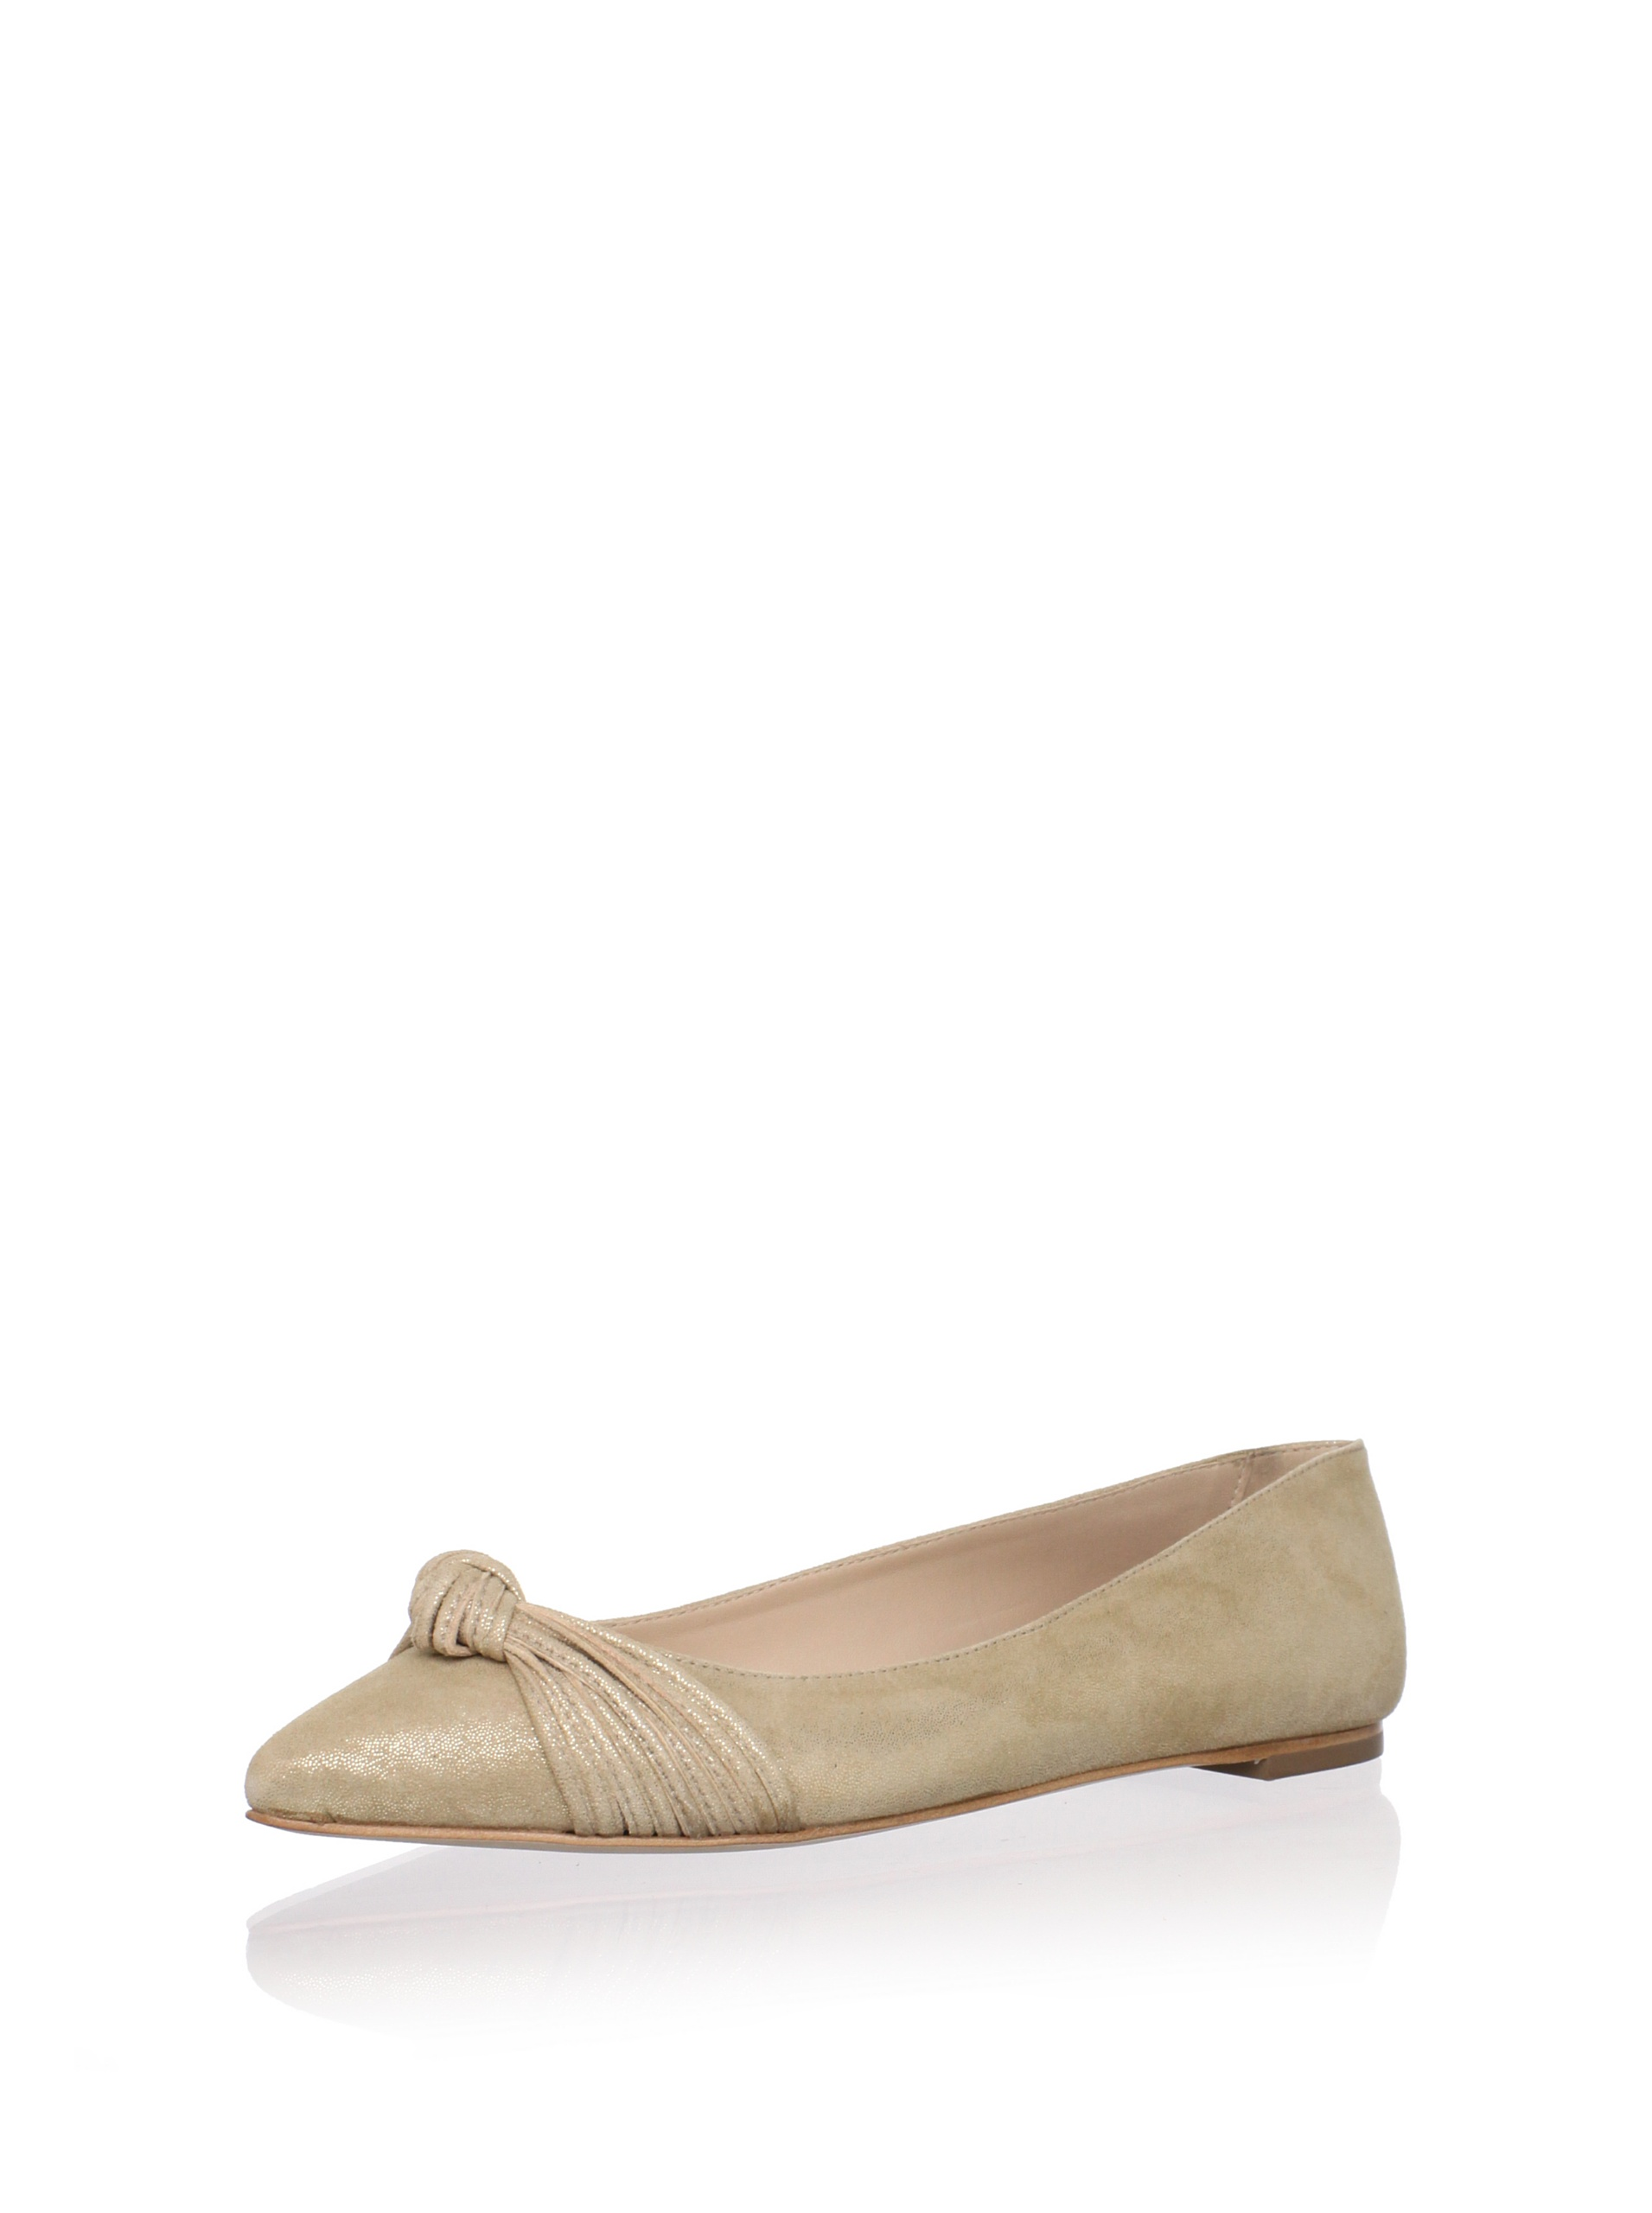 Loeffler Randall Women's Willow Flat with Mignon Knot (Gold)